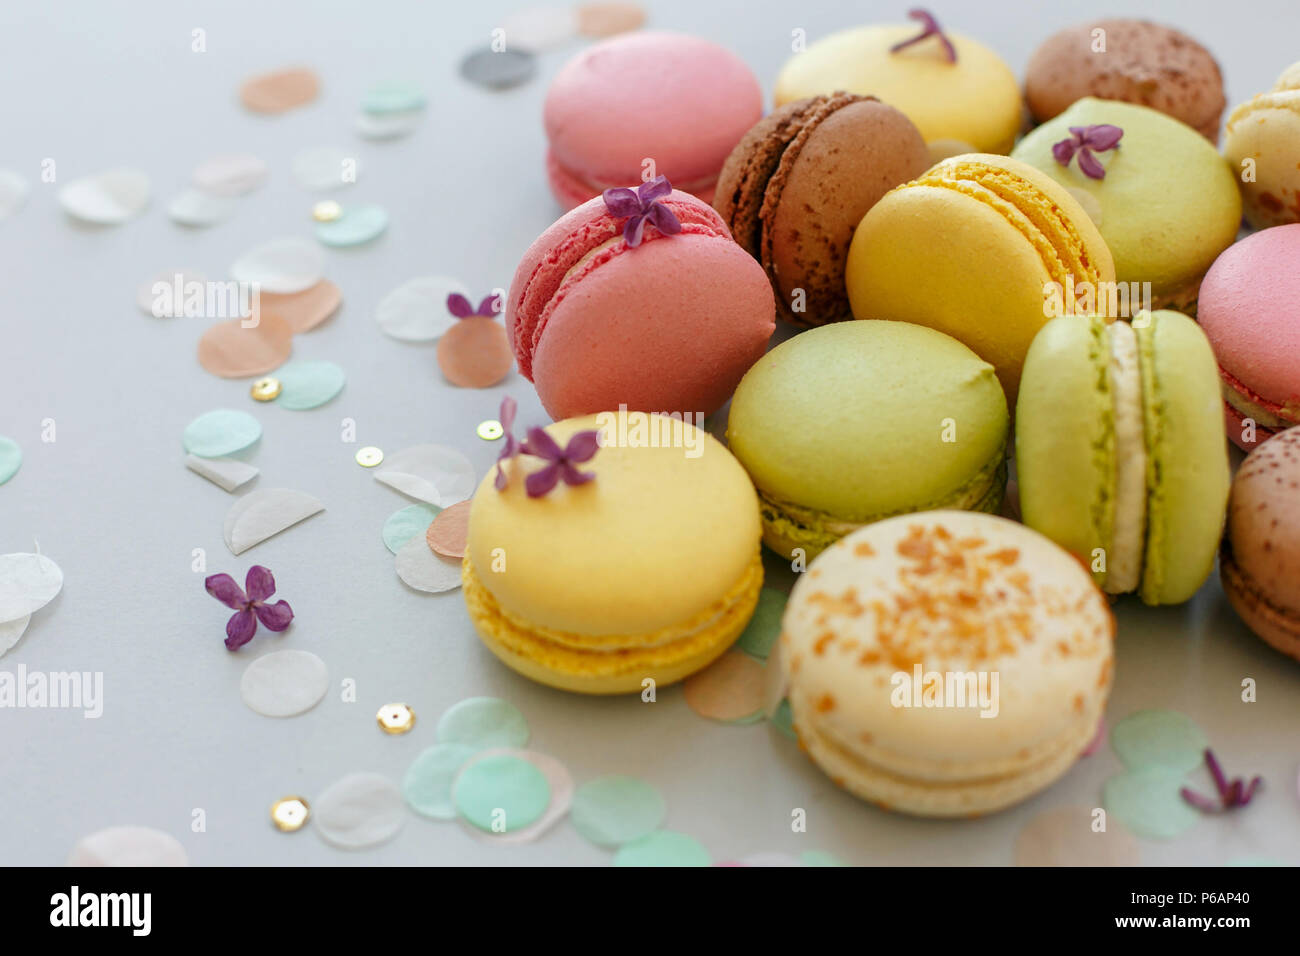 Macaron colorati sul trendy grigio pastello carta con fiori lilla e coriandoli. Gustose rosa, giallo, verde e marrone e amaretti. candy bar per party. foo Immagini Stock